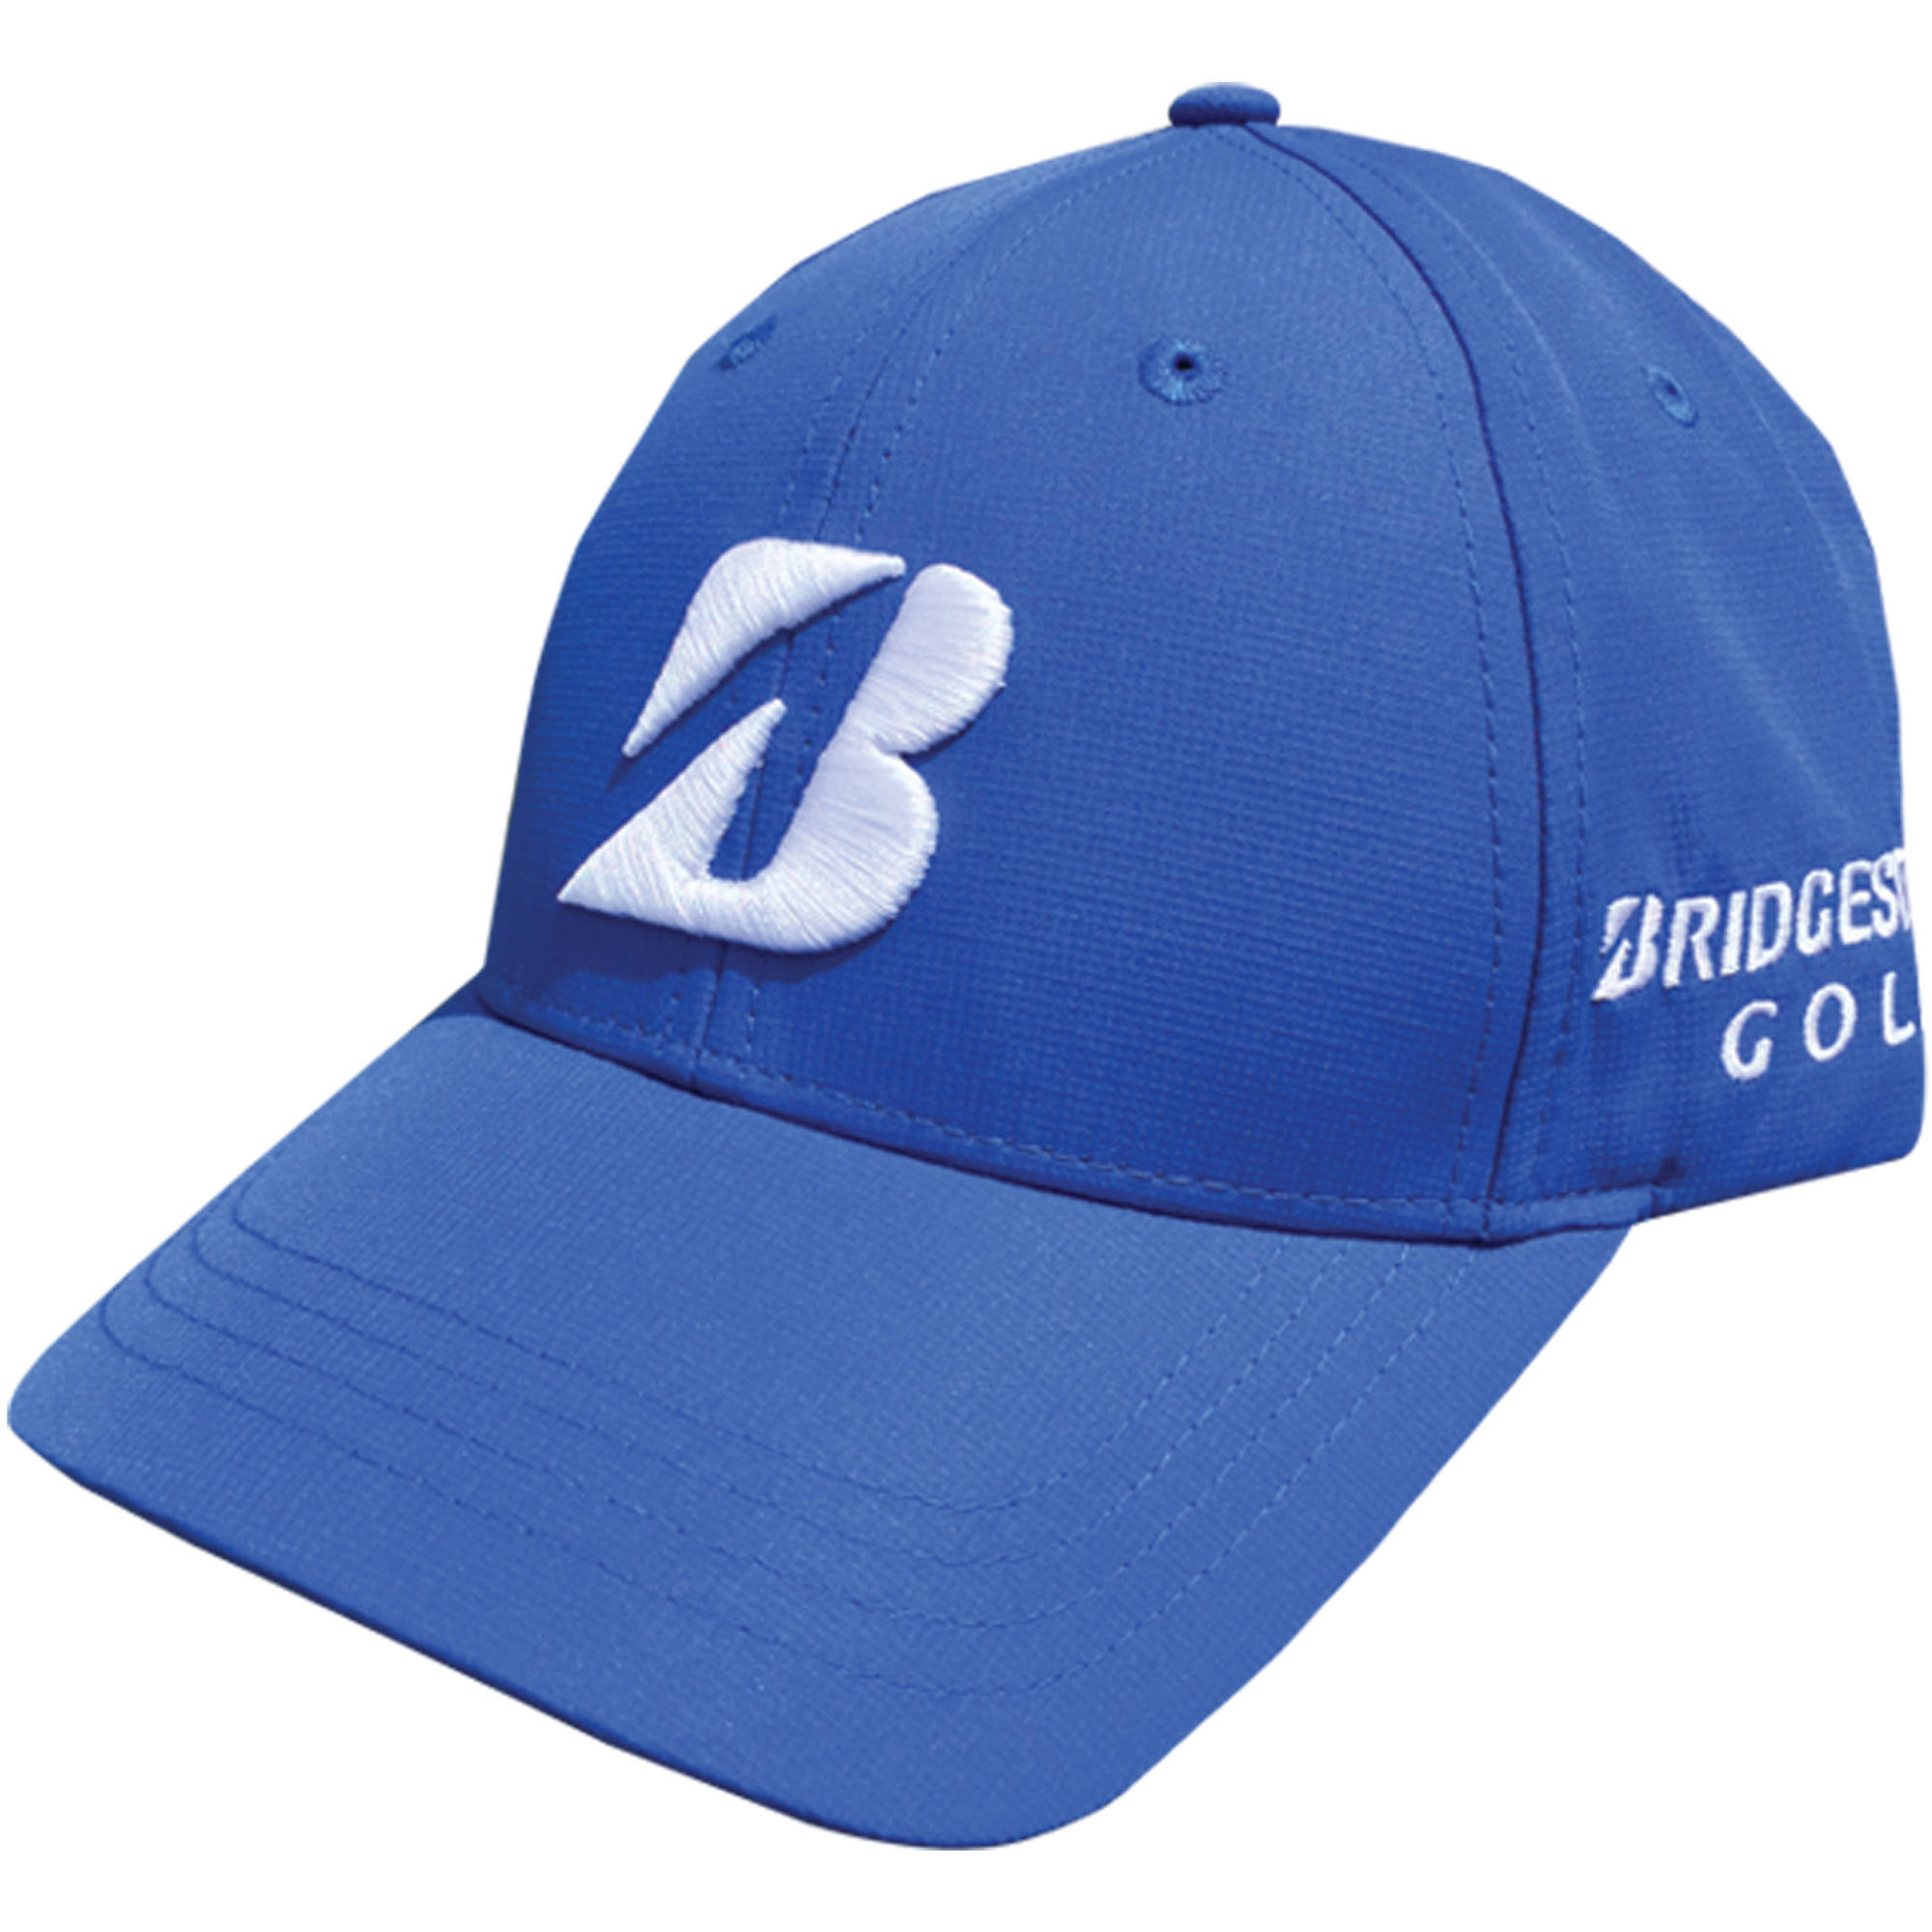 Bridgestone Golf Performance Cap, Cobalt